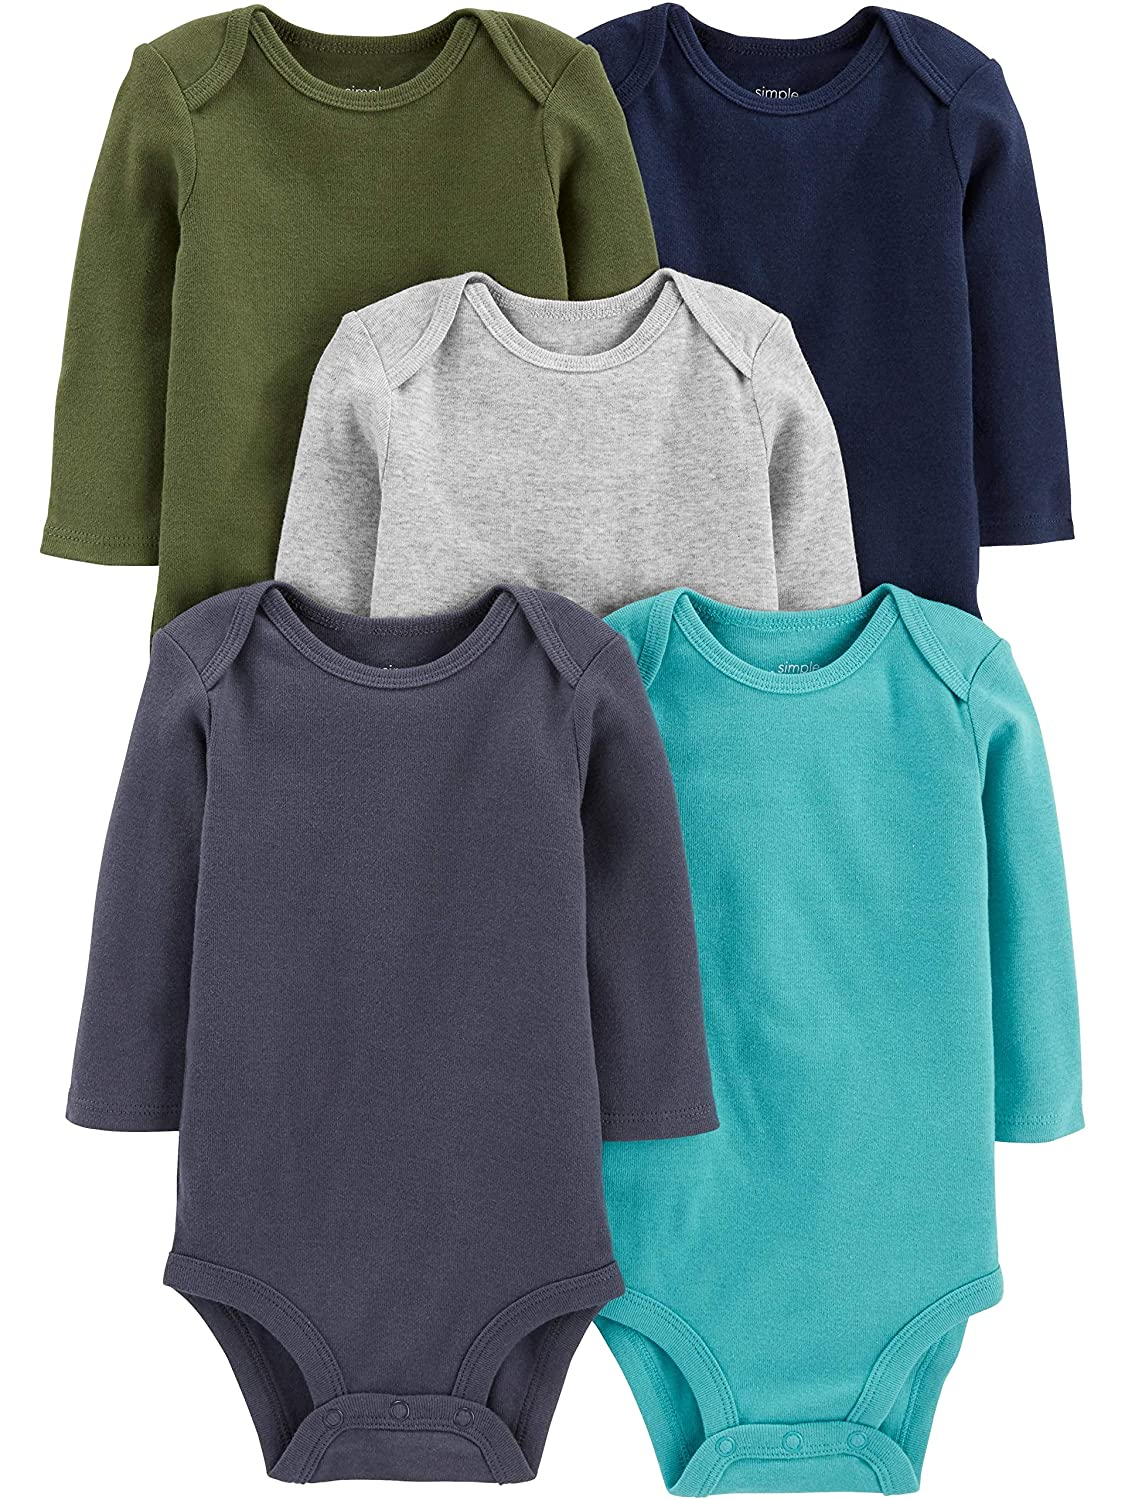 solids Simple Joys by Carters Boys 5-Pack Long-Sleeve Bodysuit 18 Months